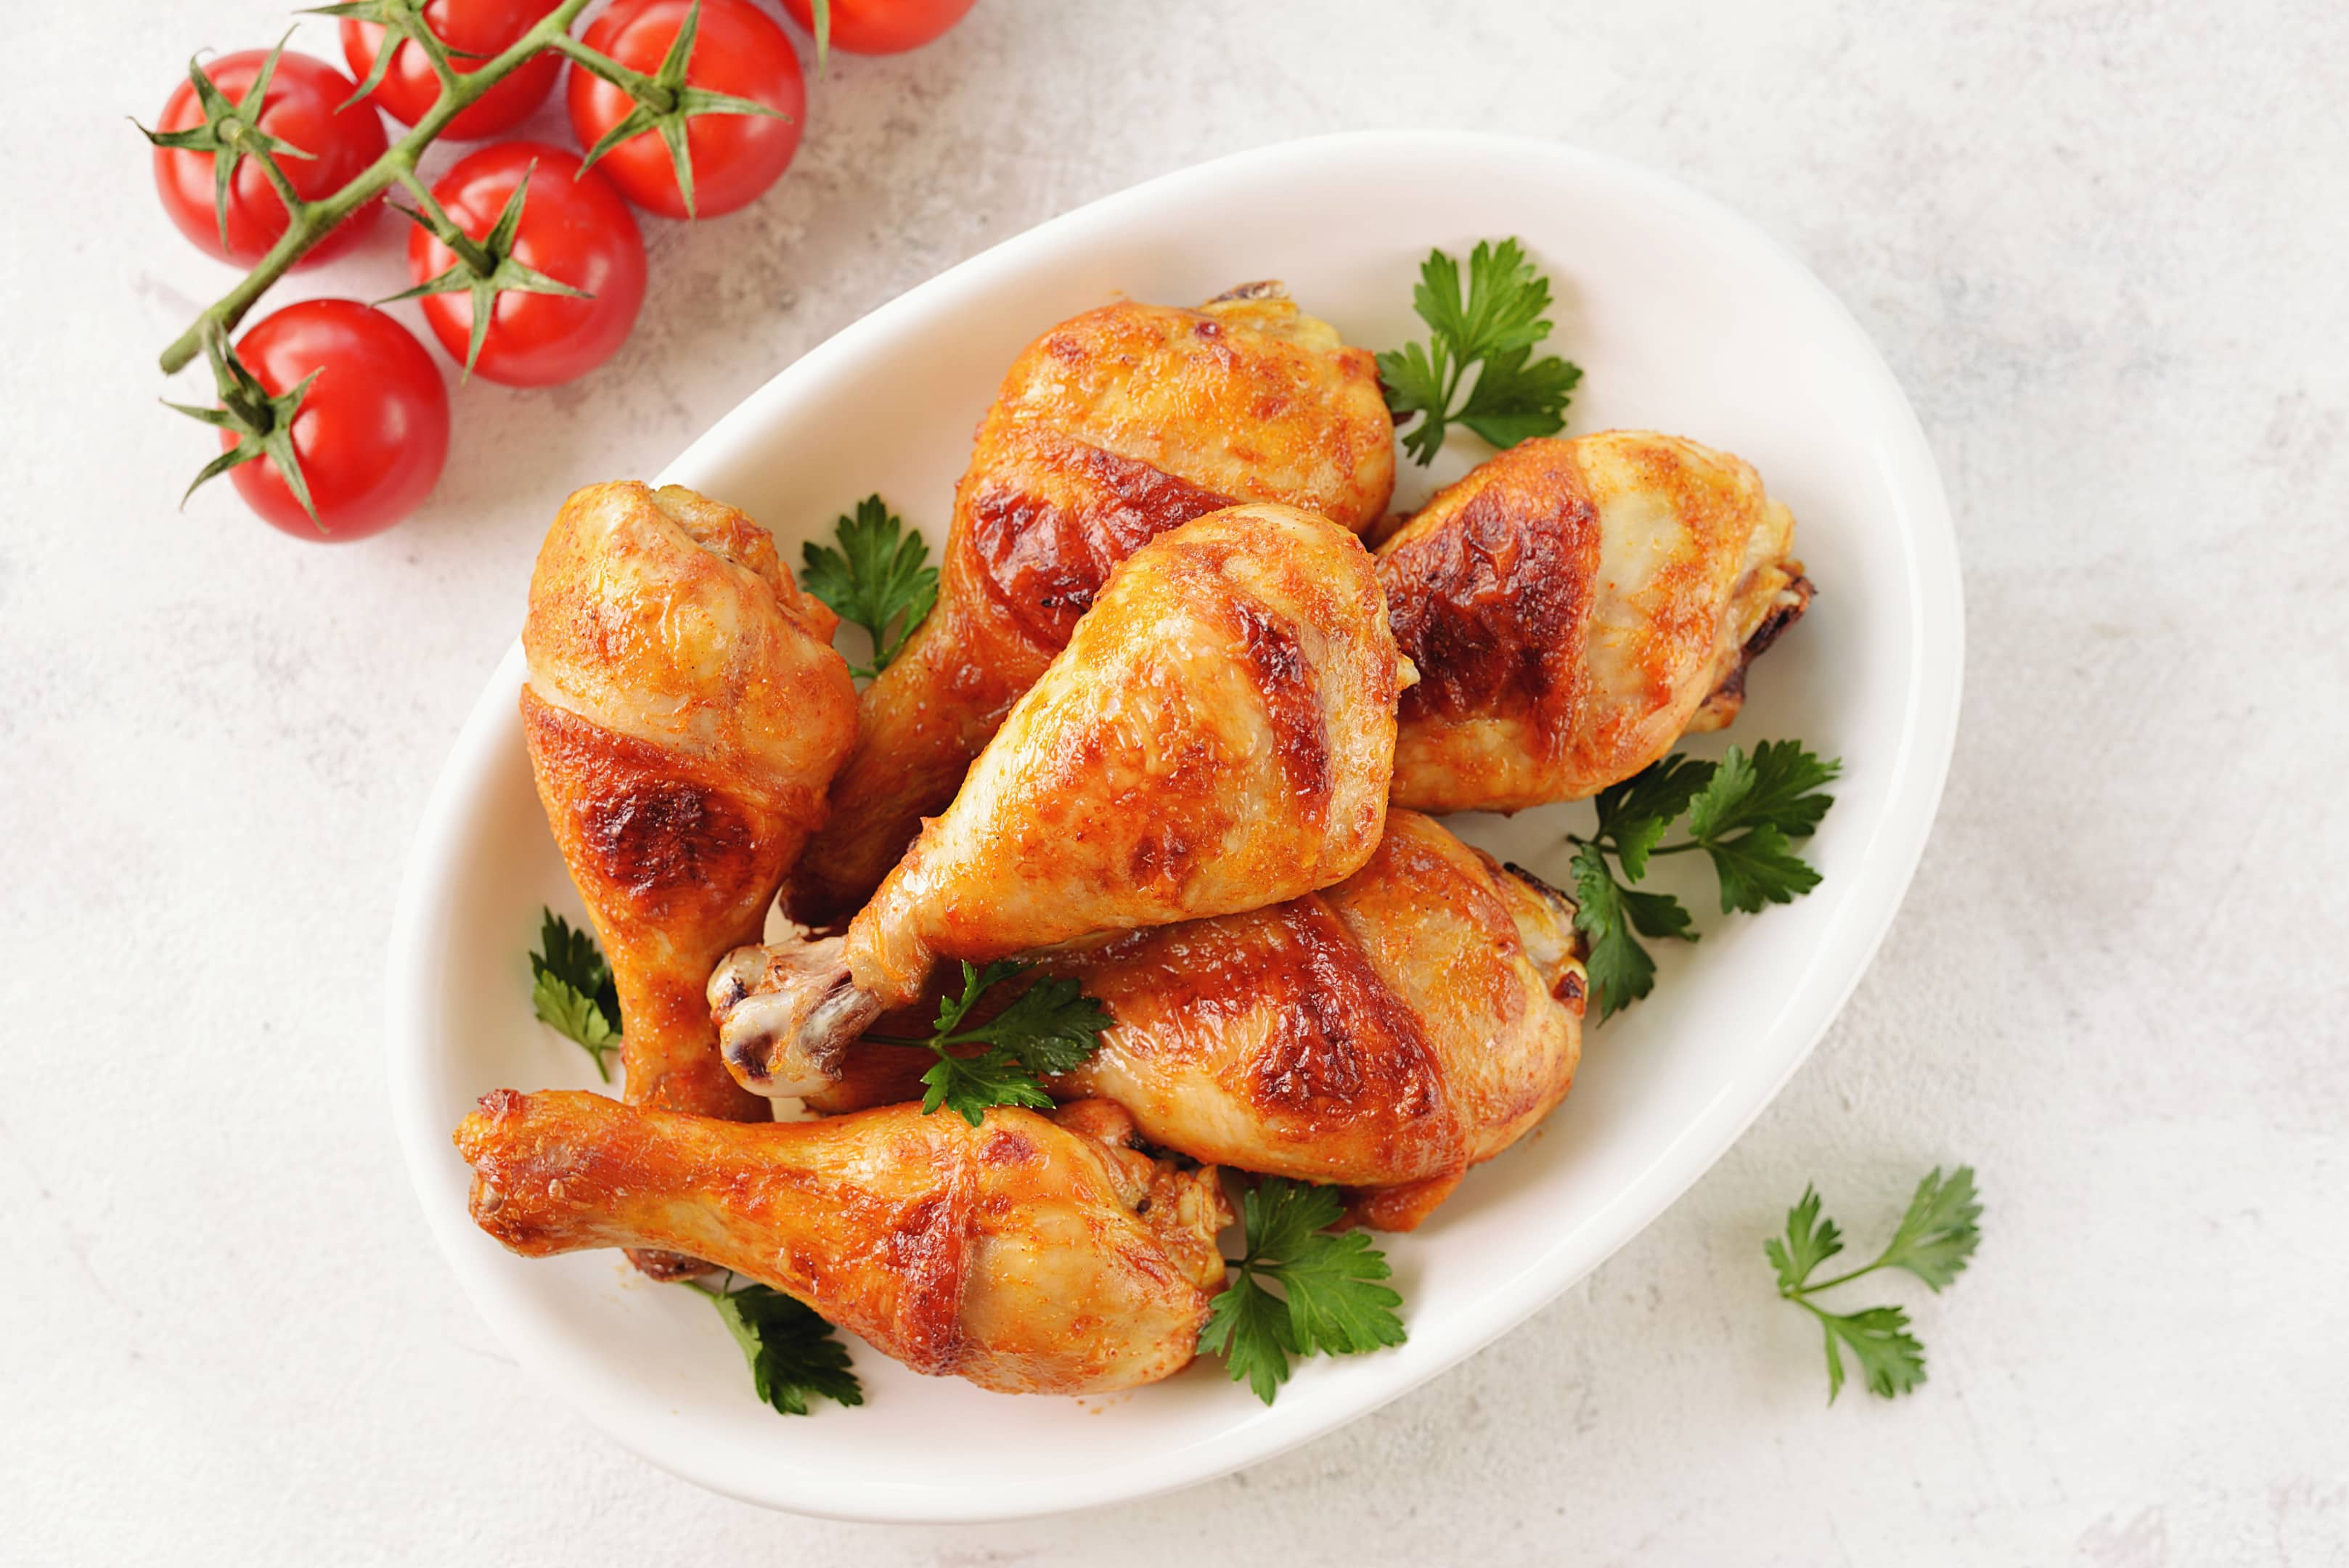 Chicken drumsticks baked with tomato sauce soy sauce and olive oil